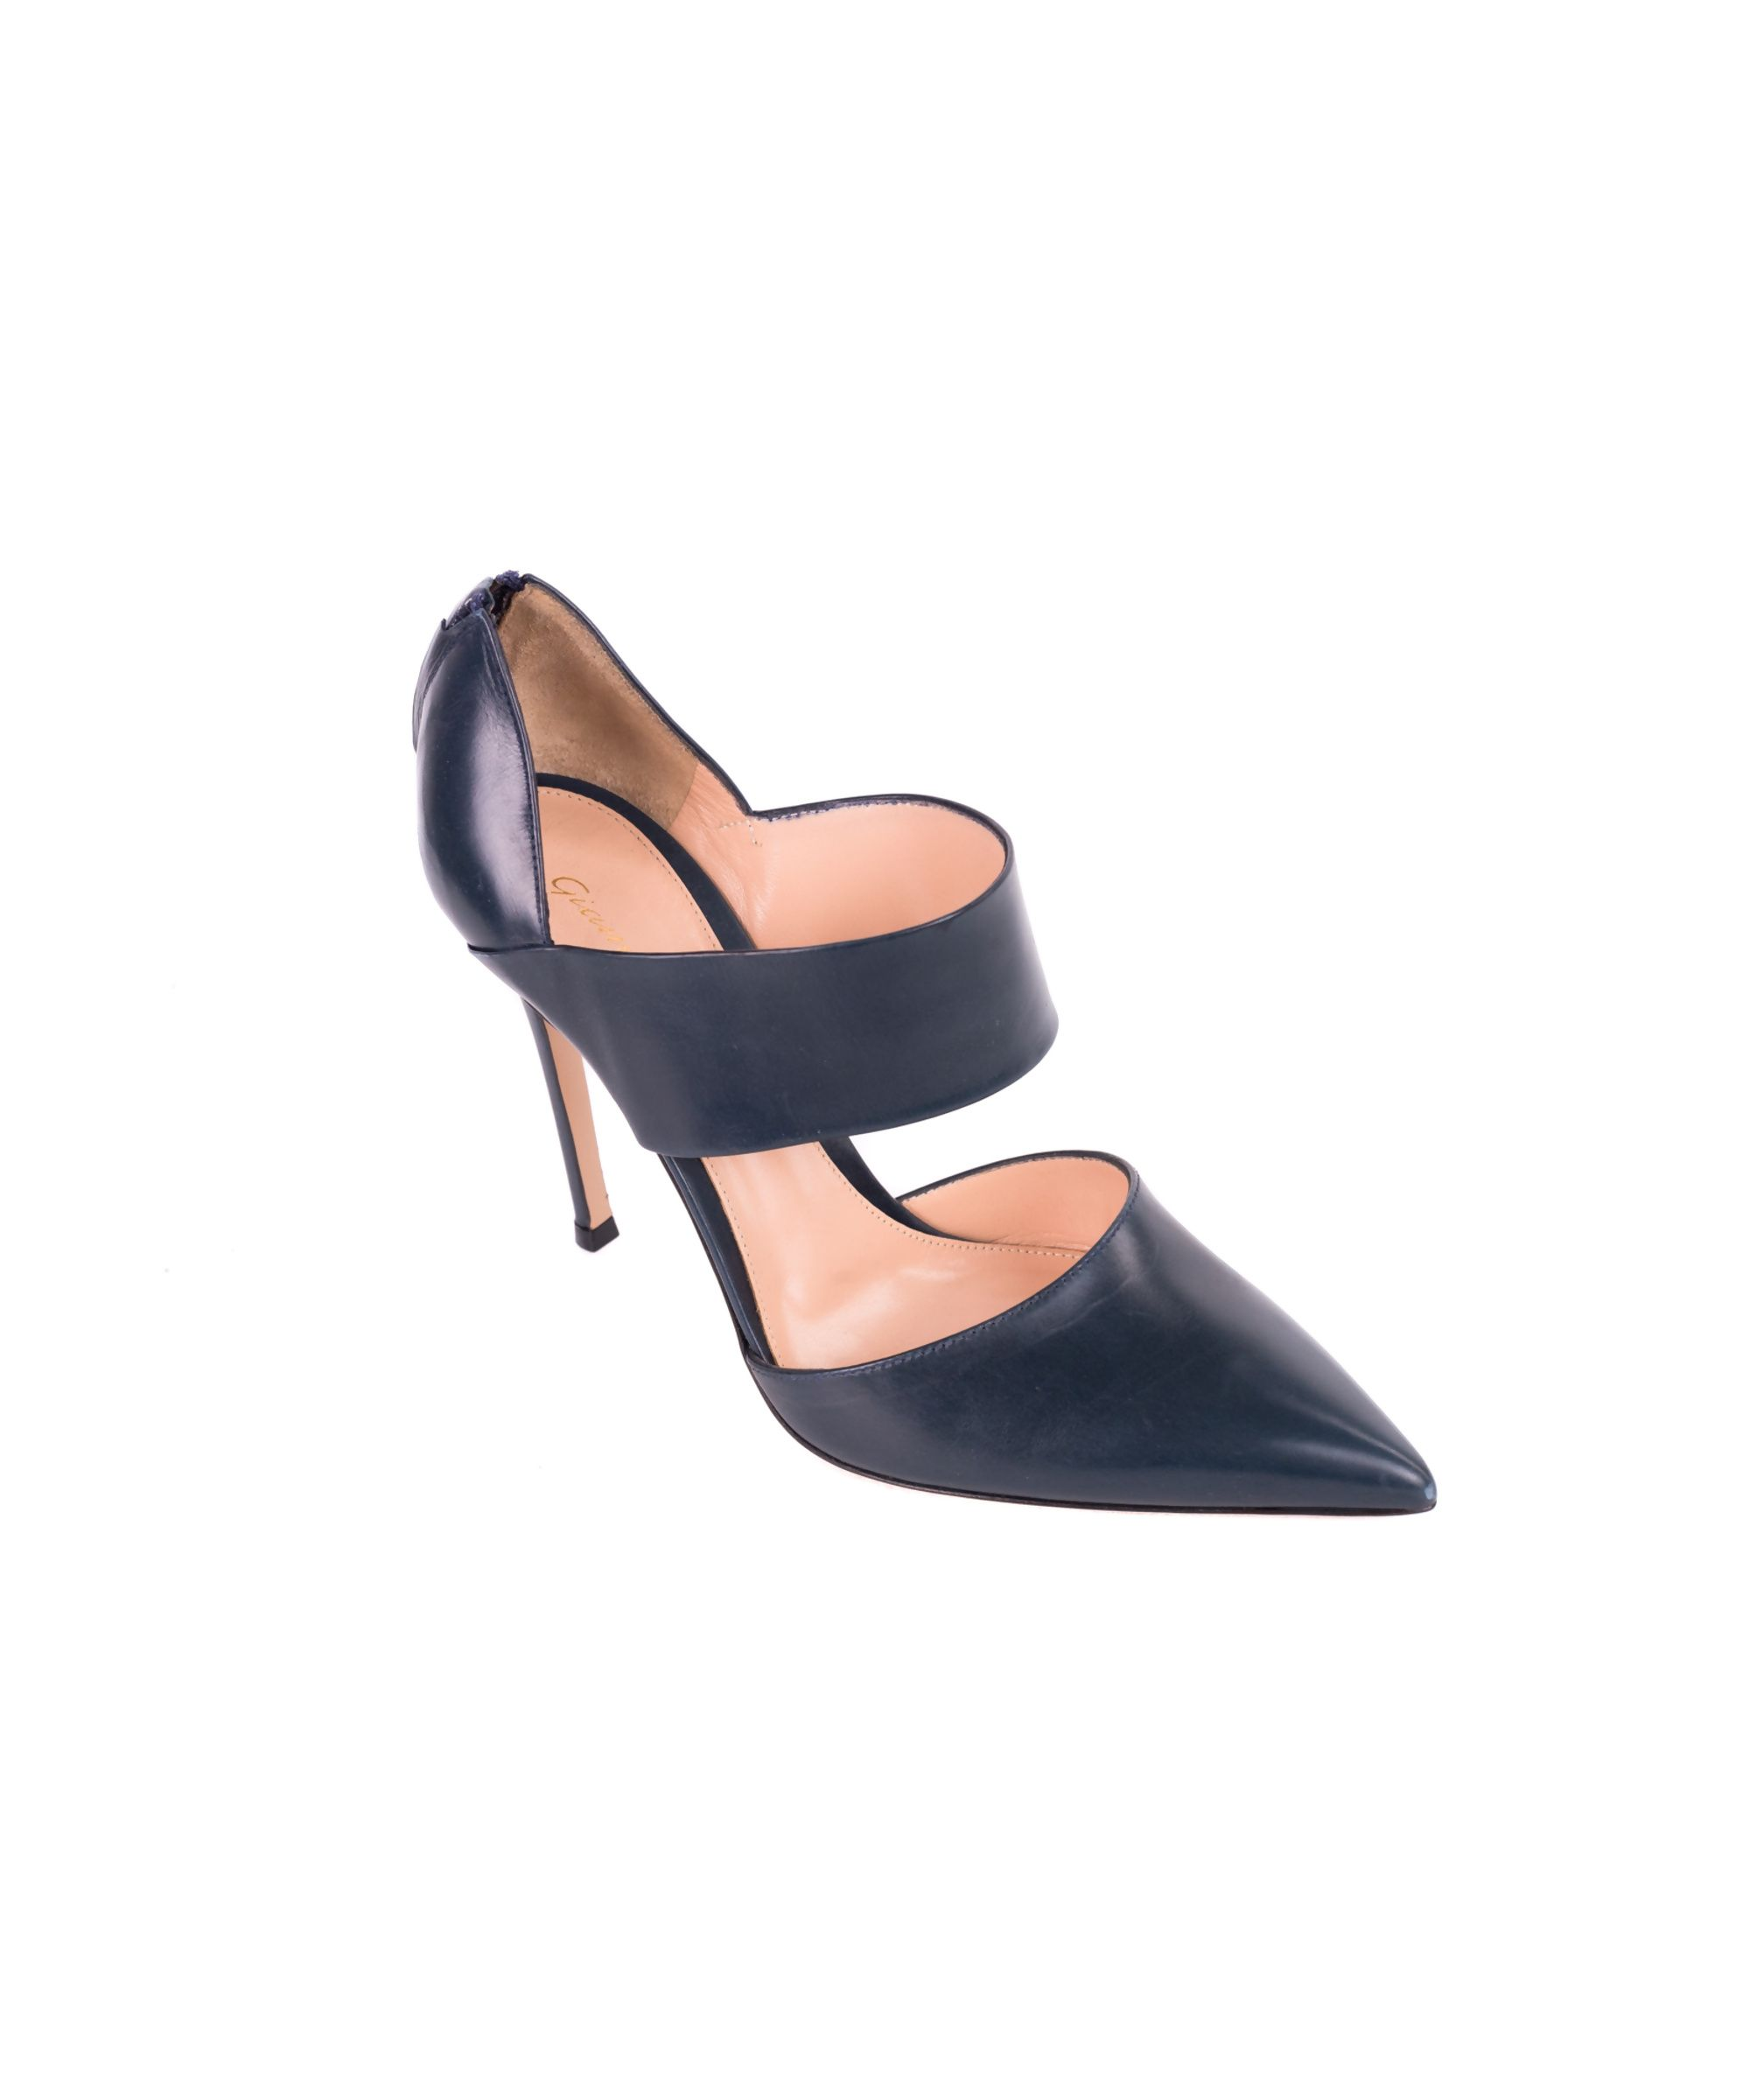 Gianvito Rossi Gianvito Rossi Deep Teal Leather Pointed Toe Vamp Strap Pumps Shoes Pumps High Heels Gianvito Rossi Strap Pumps Teal Leather Deep Teal